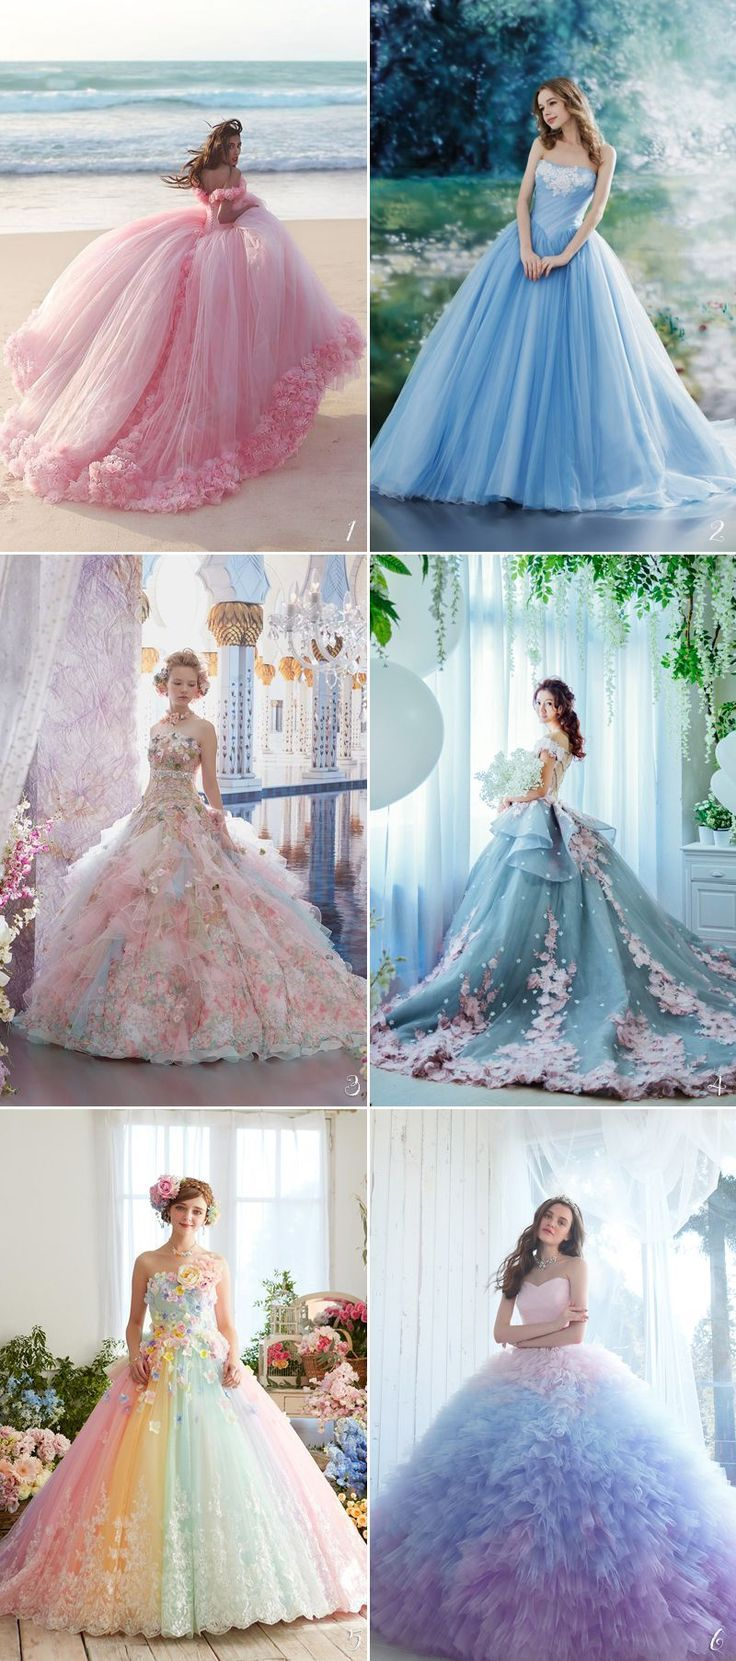 24 Princess-Worthy Bridal Ball Gowns You'll Love  #bridal #gowns #princess #wort…